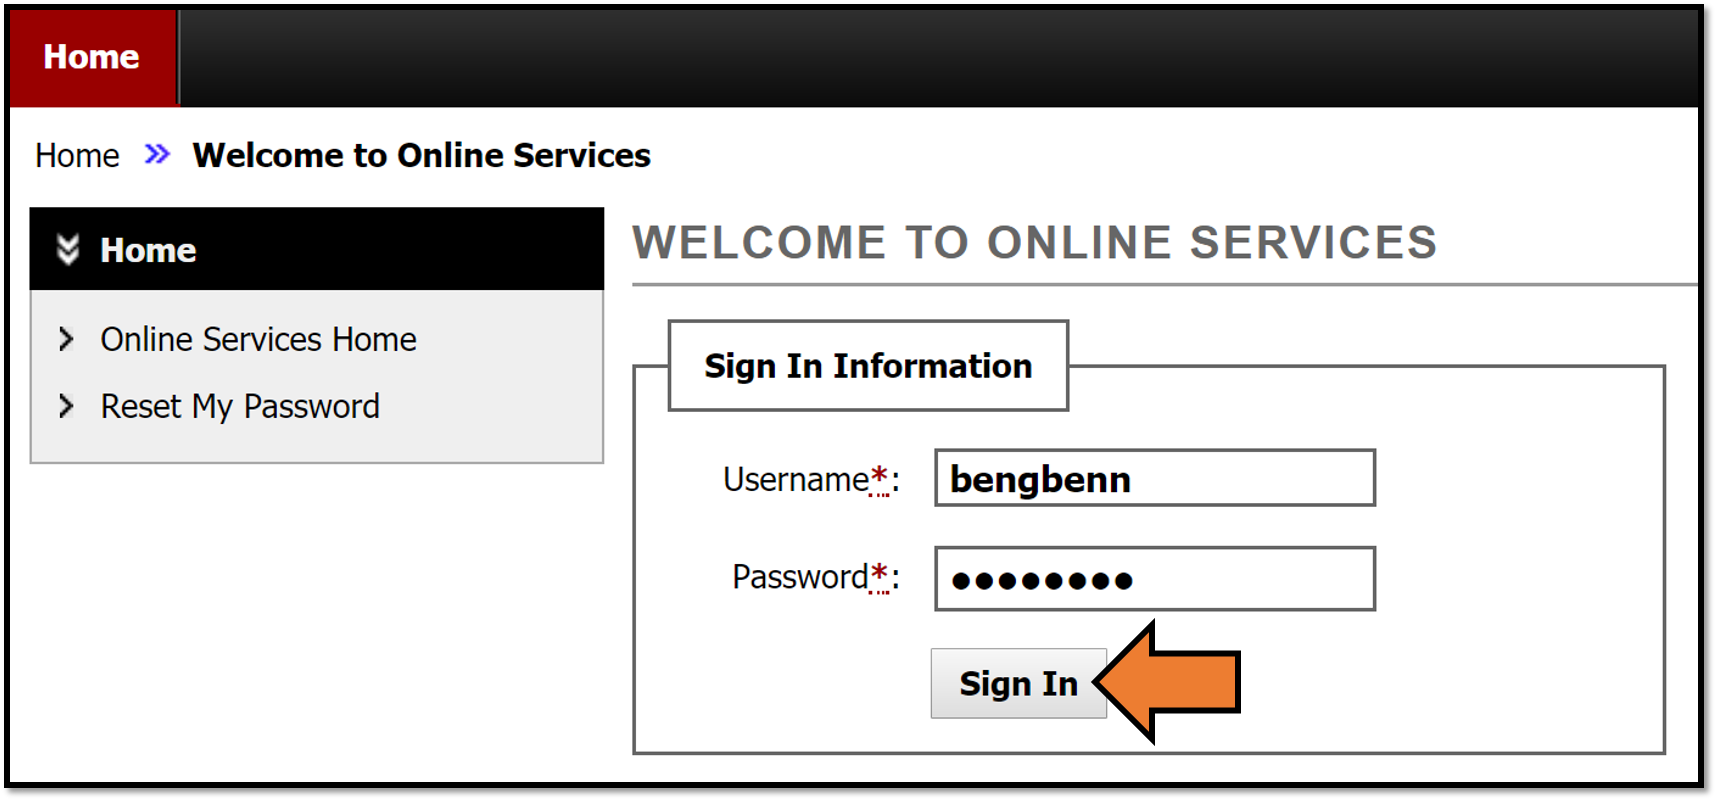 Signing in to the Services Portal using your new username and password